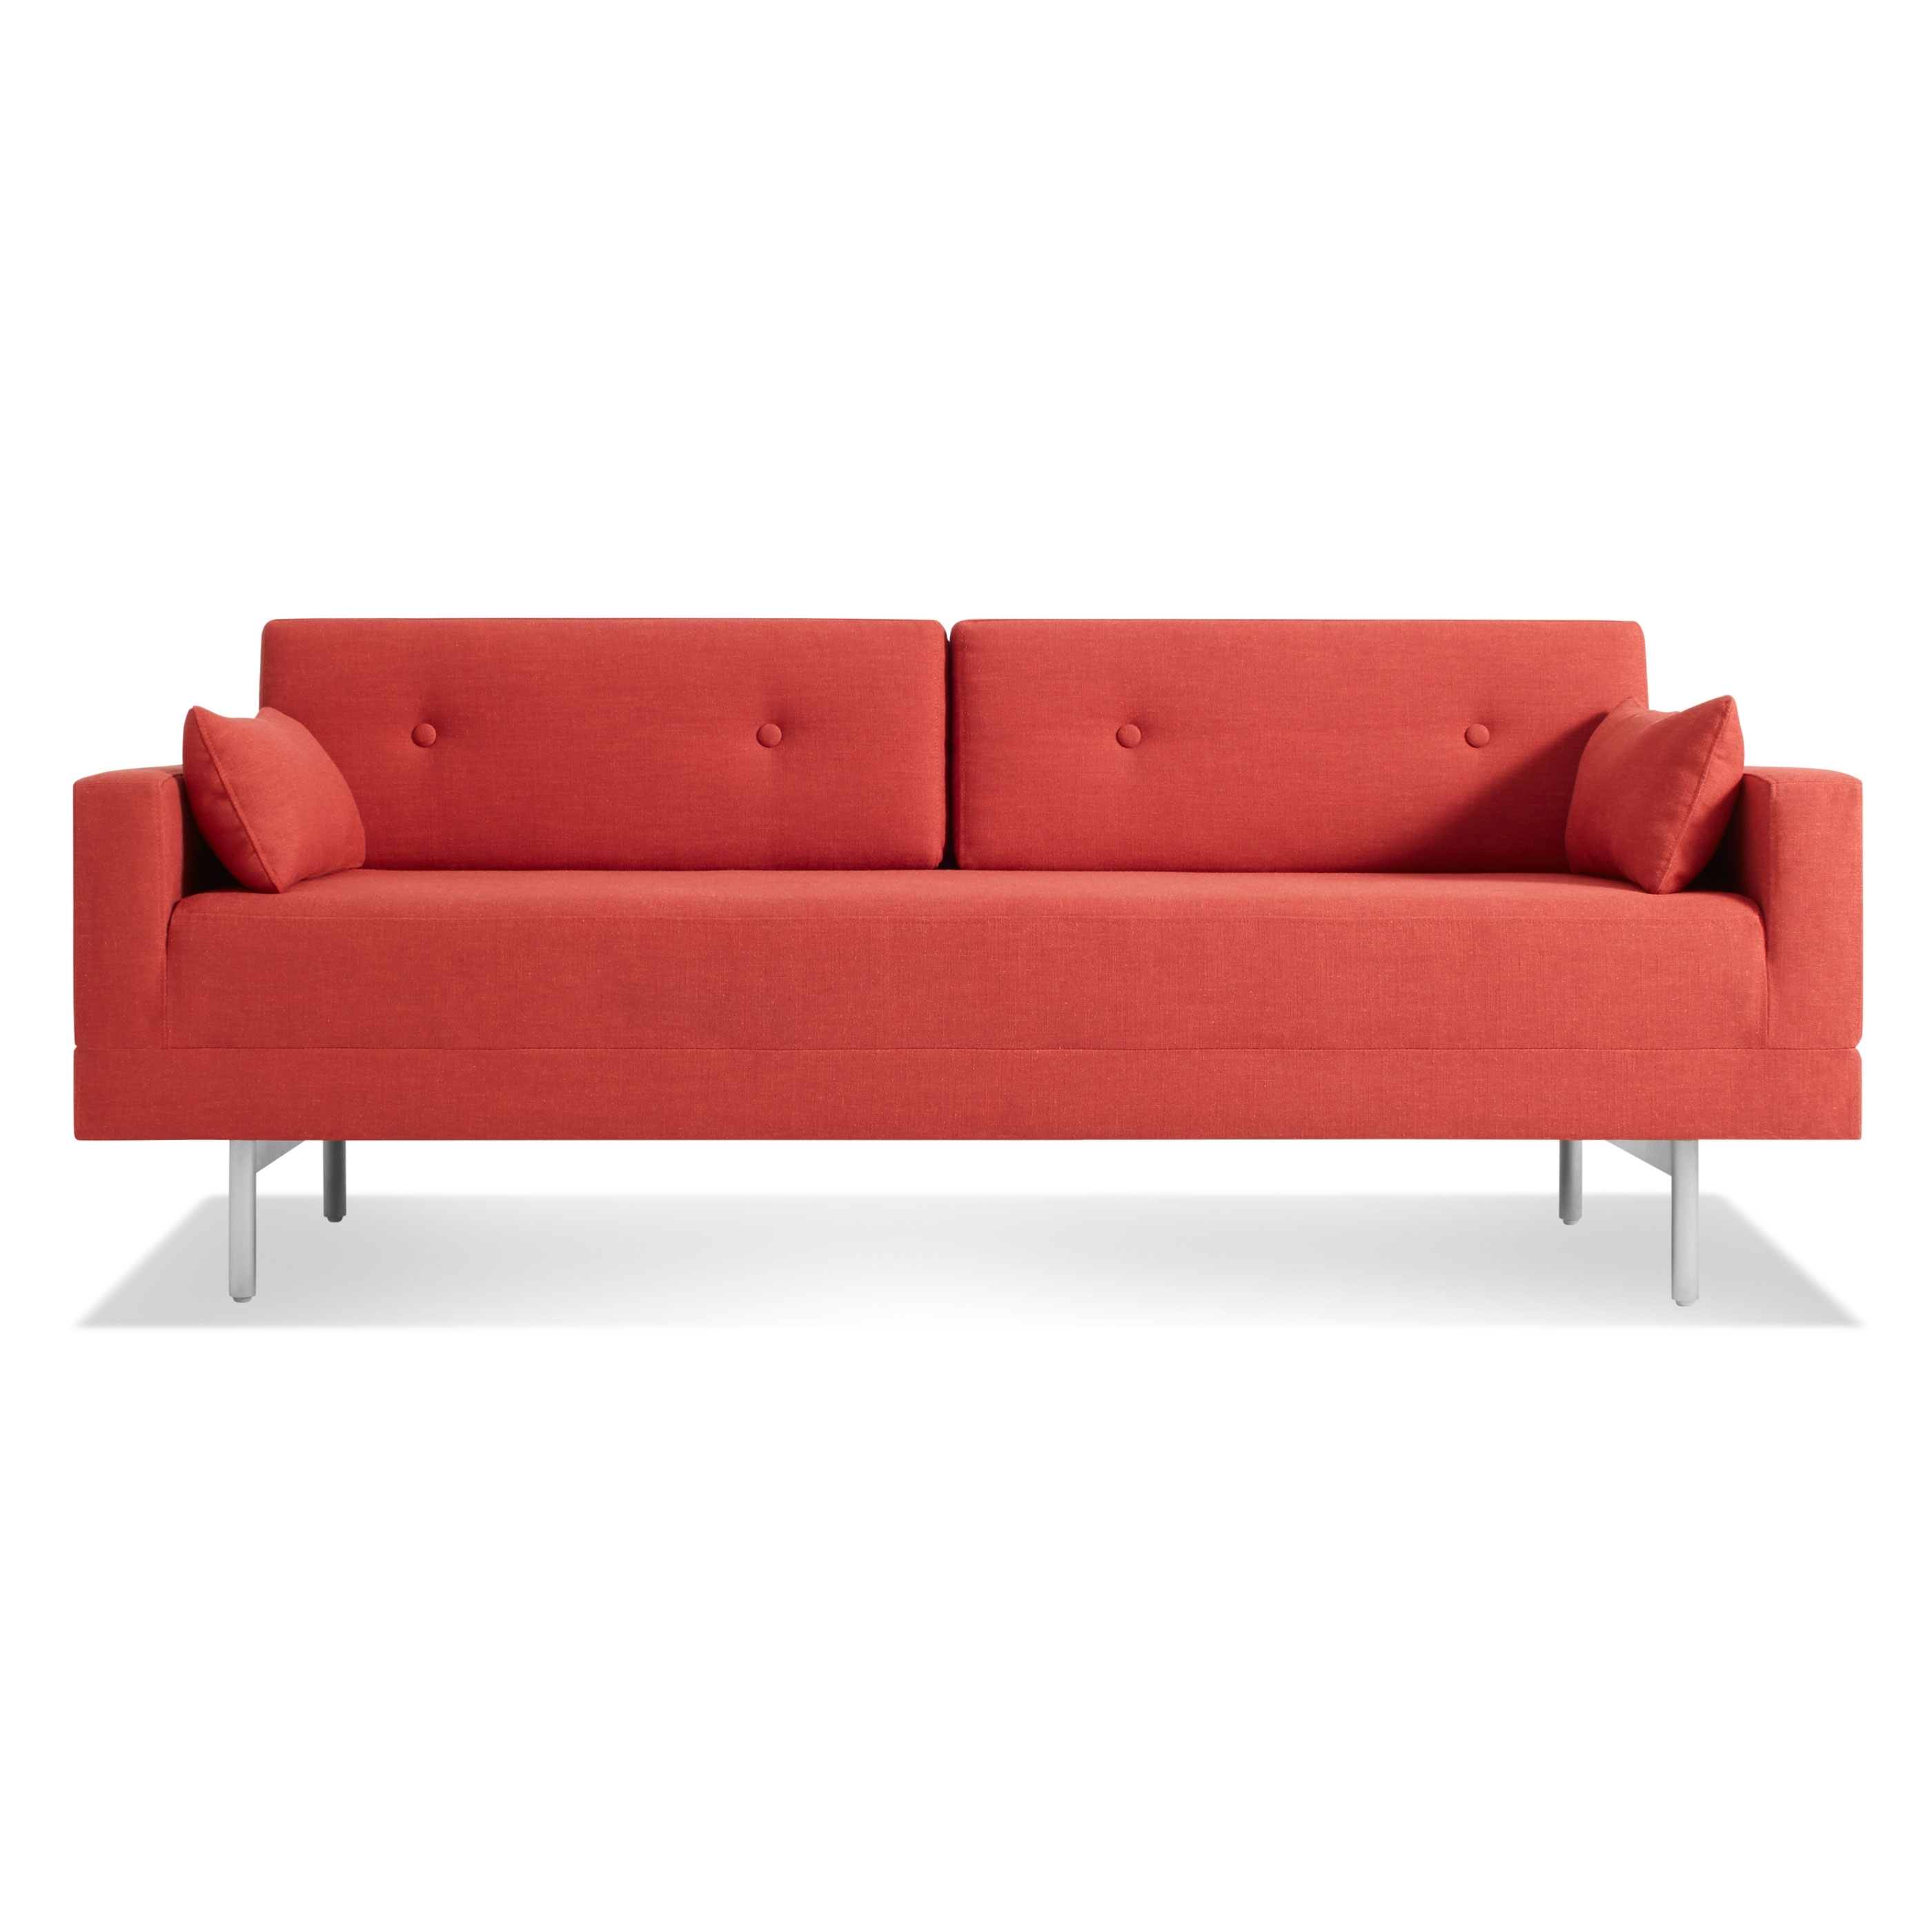 One Night Stand Sleeper Sofa – Modern Seating – Blu Dot In Red Sleeper Sofas (Image 7 of 12)